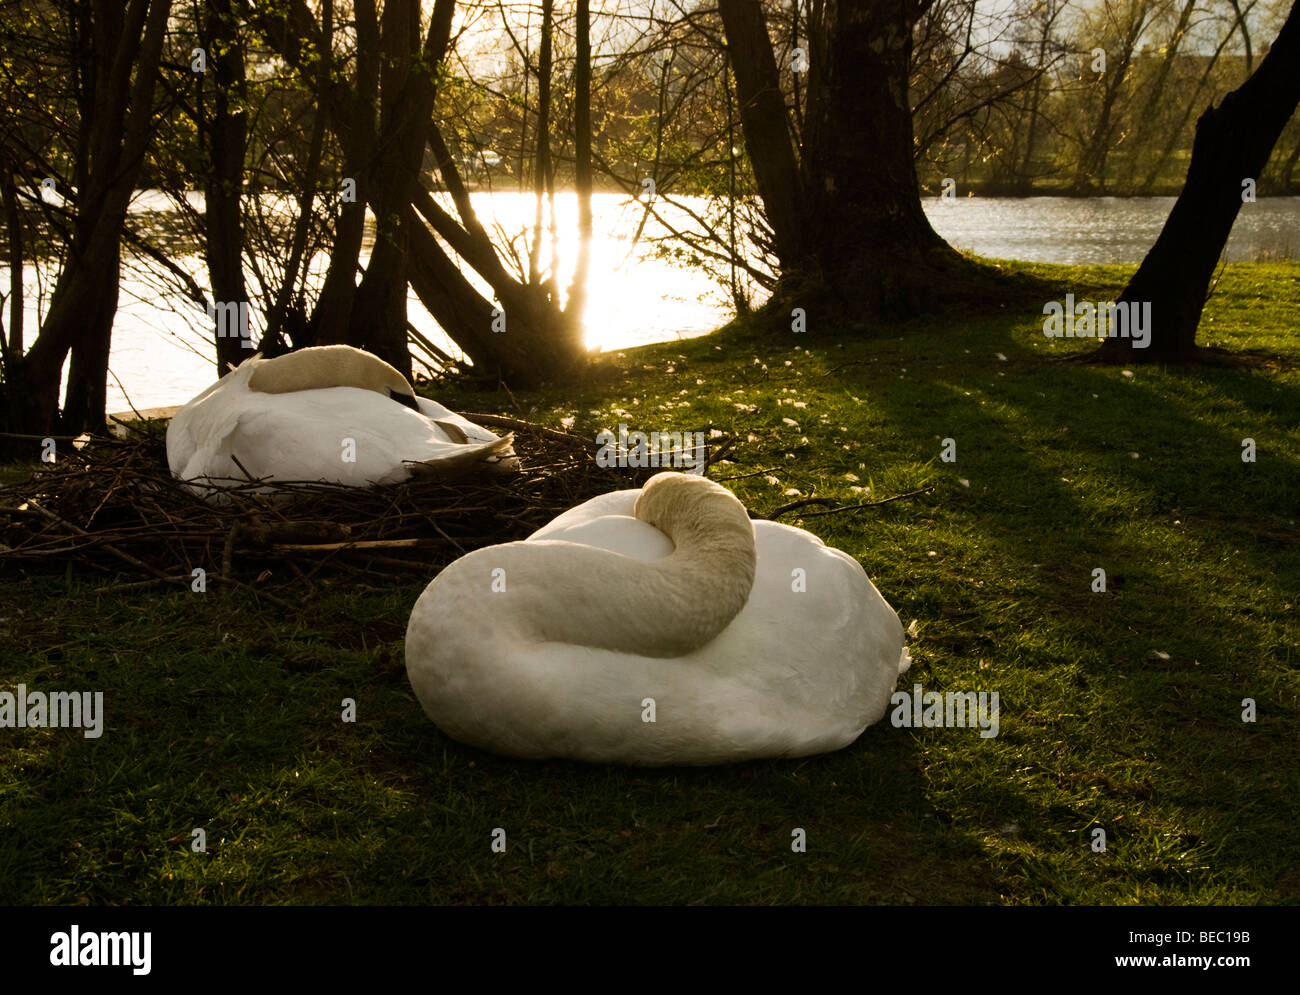 The Sleeping Swans >> Swans Sleeping Stock Photos Swans Sleeping Stock Images Alamy